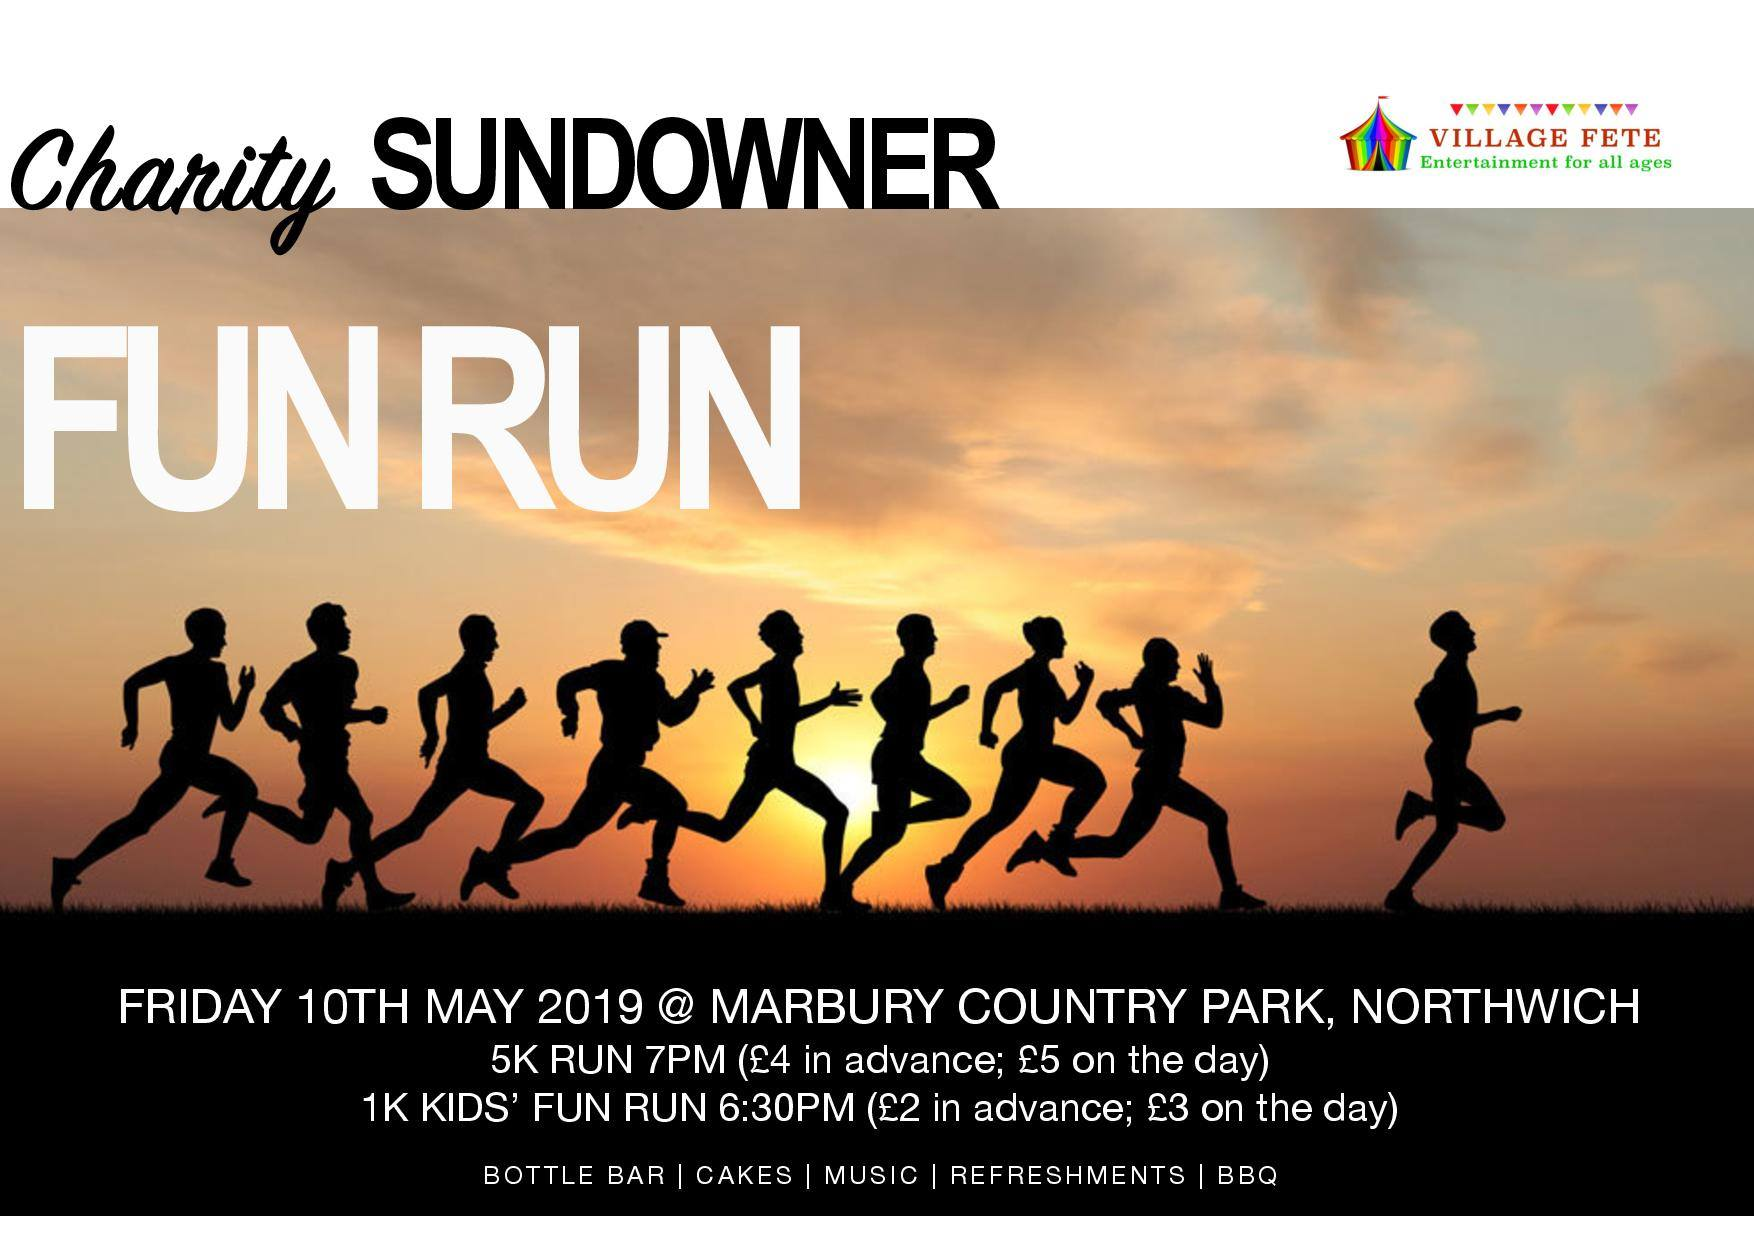 Sundowner 5k & 1k Fun Run